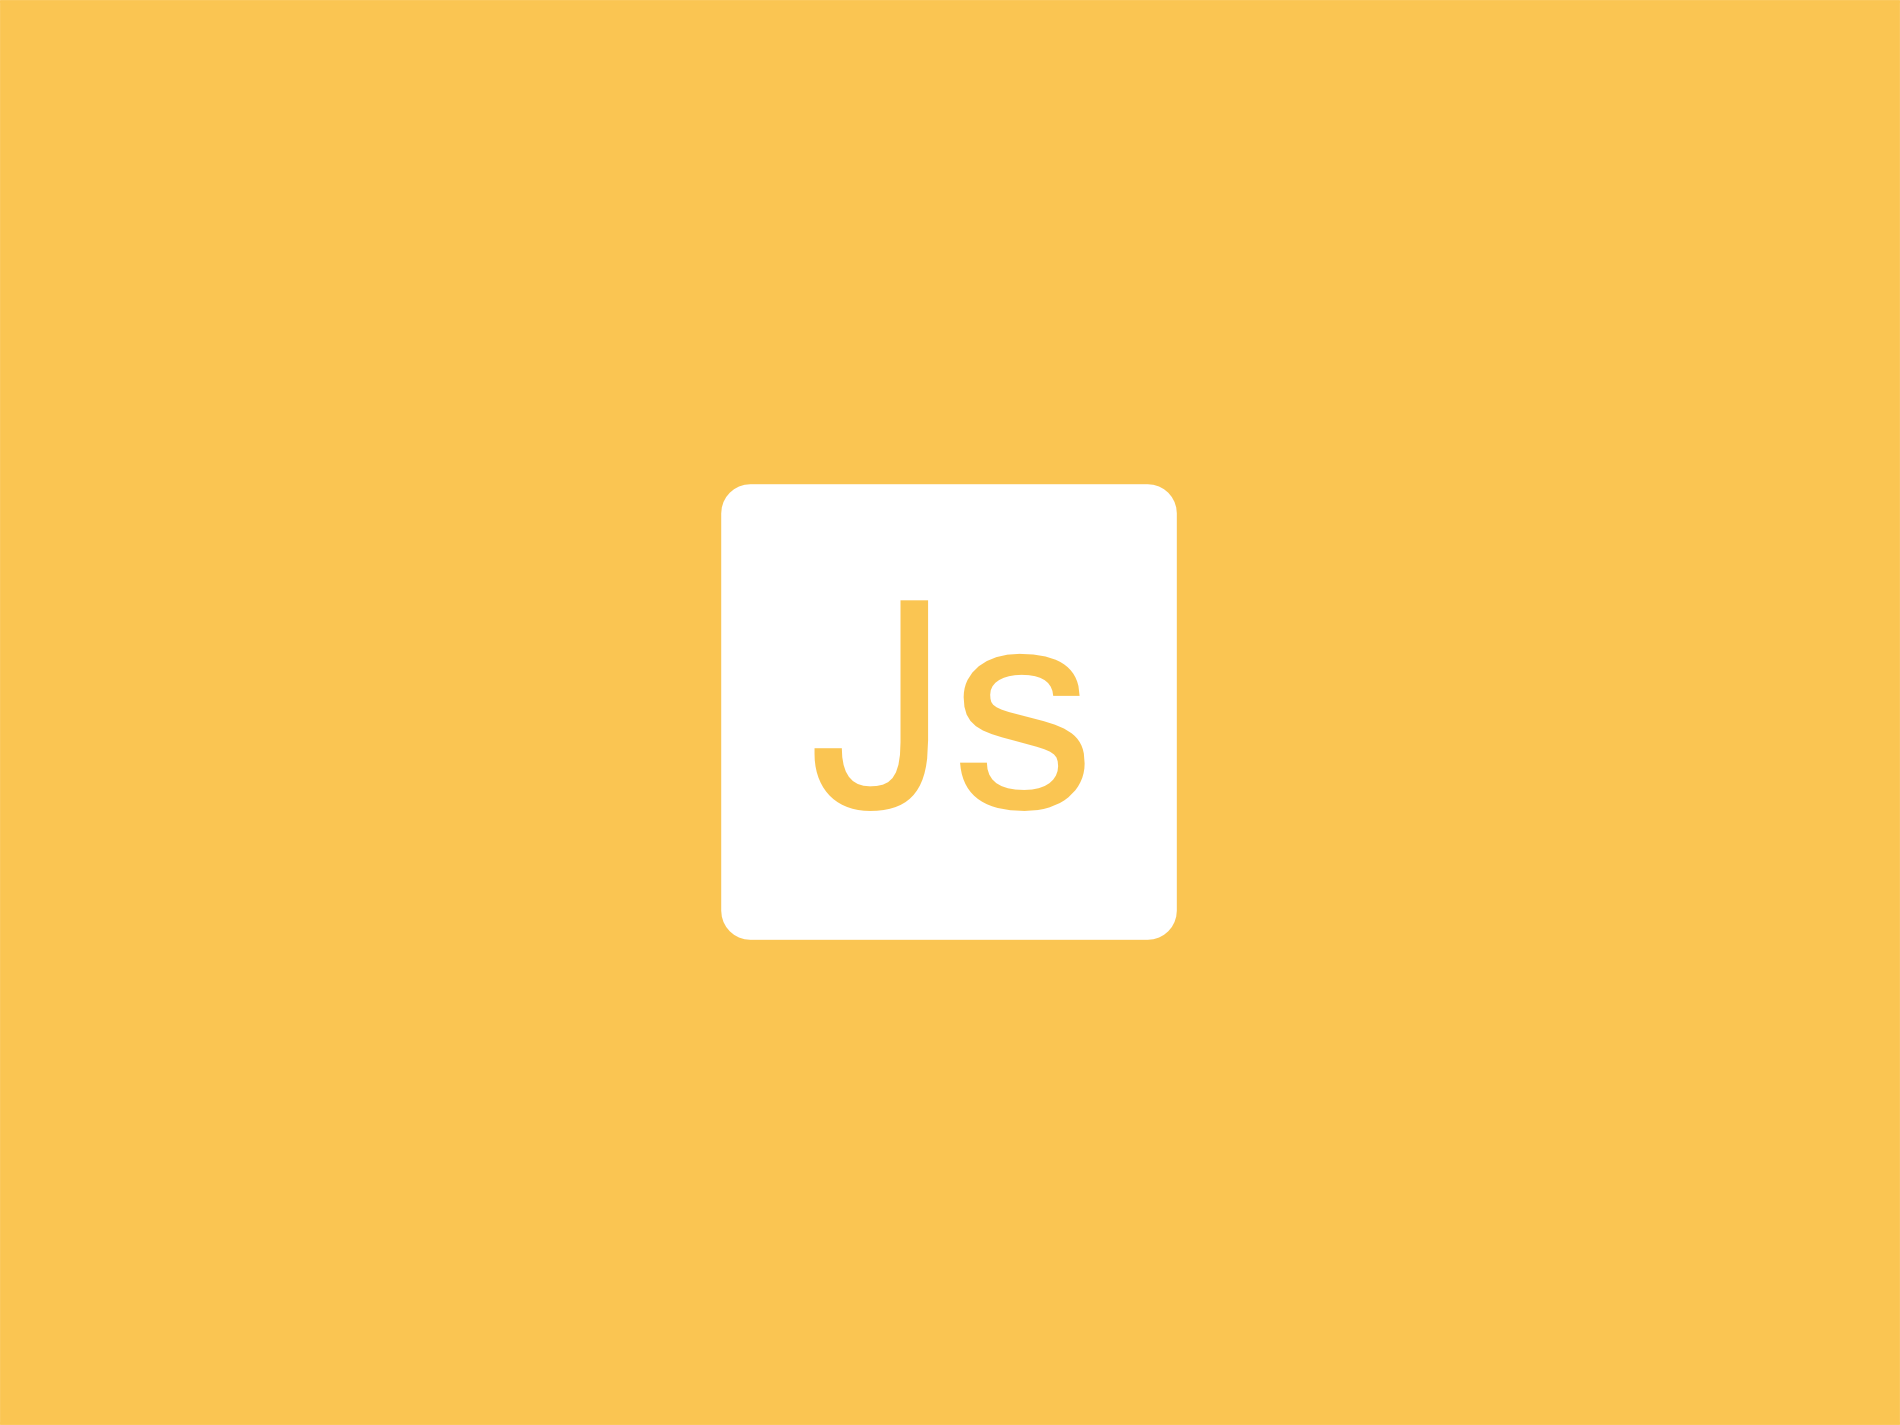 JavaScript: execute an action after a CSS transition is complete